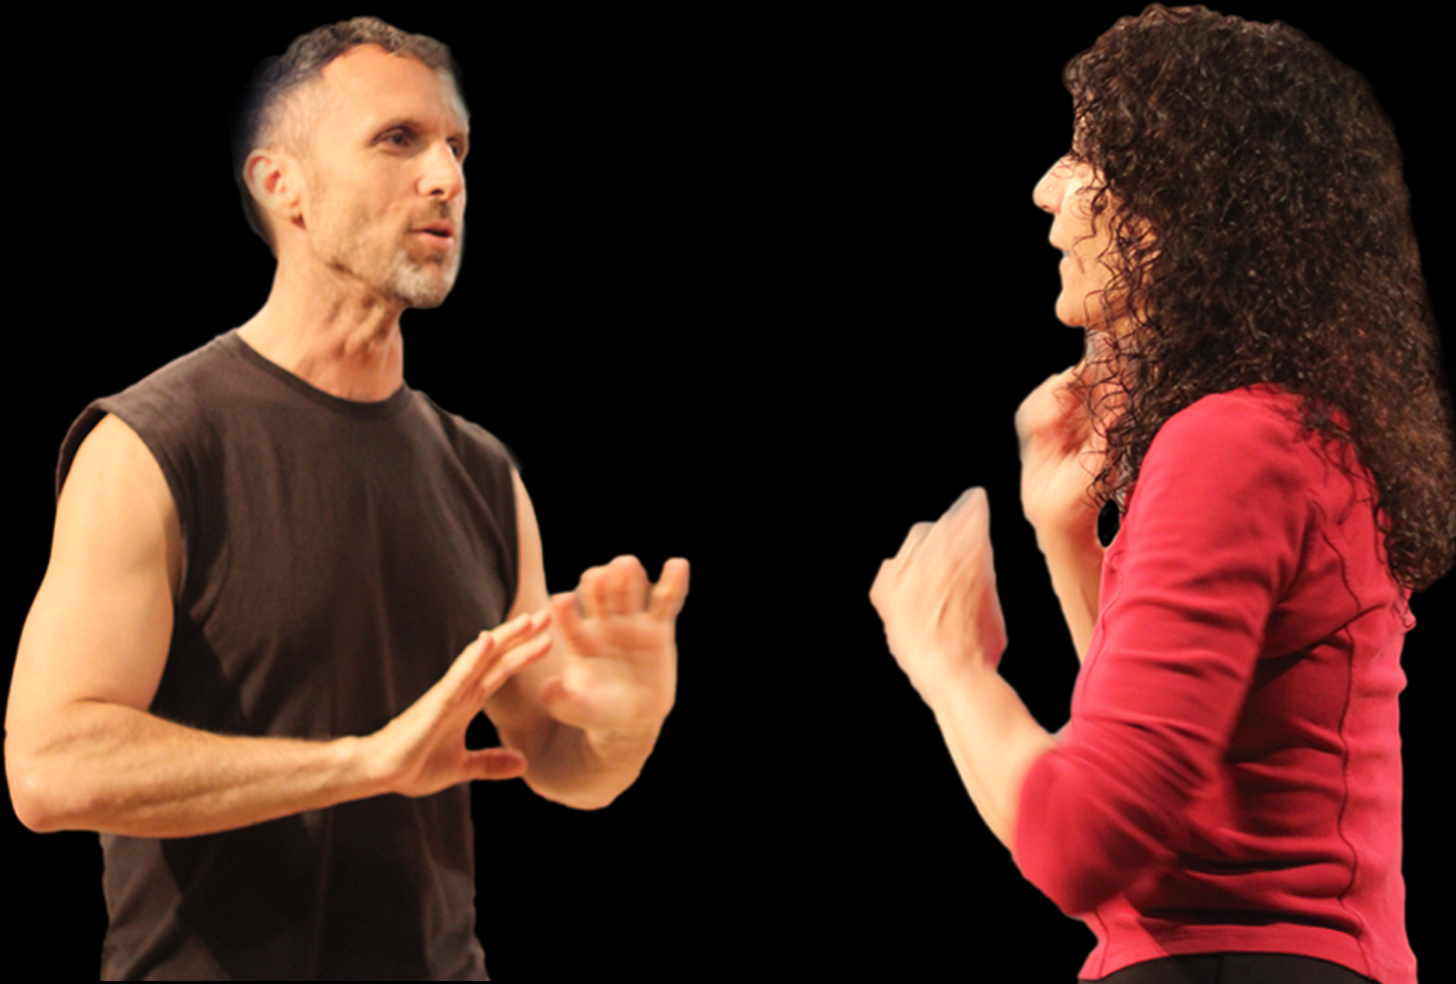 Personalized Sessions with Kari Margolis - Breathe new life into your monologue and transform your performance.